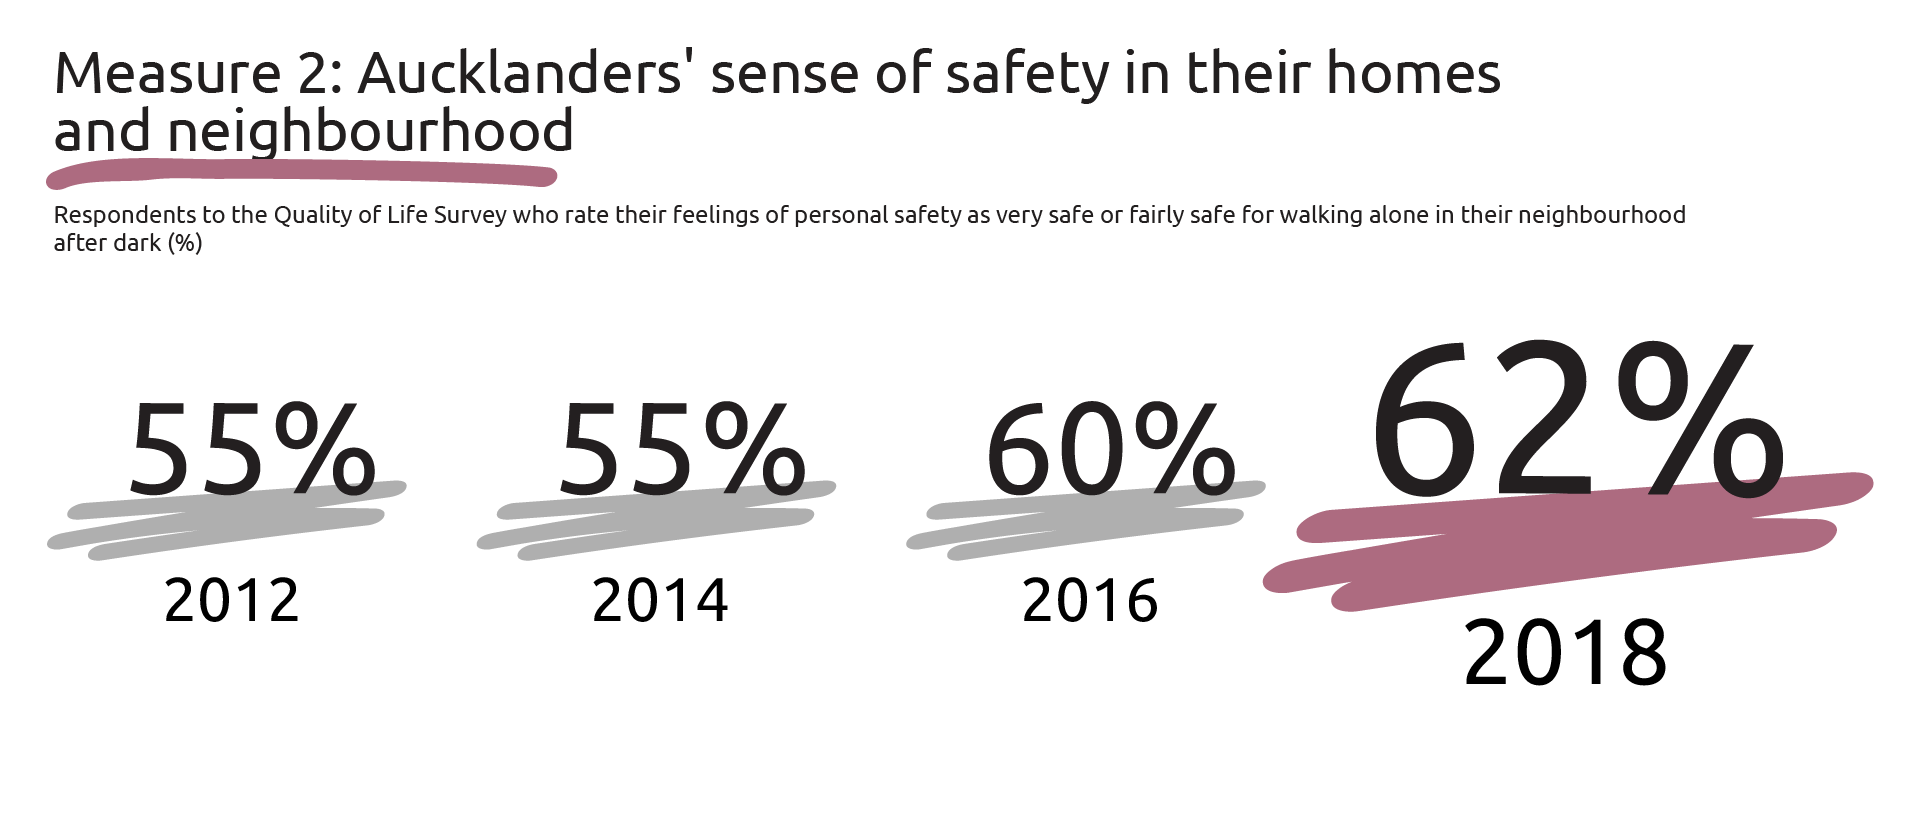 Graphic showing percentages of respondents to the QOL survey who rate their feelings of personal safety as very safe/fairly safe for walking alone in their neighbourhood after dark: 2012-55 per cent, 2014-55 per cent, 2016-60 per cent and 2018-62 per cent